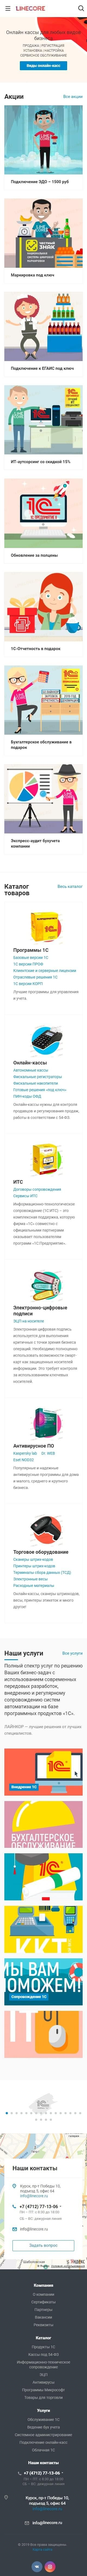 image of the mobile version of the site «Linecore»